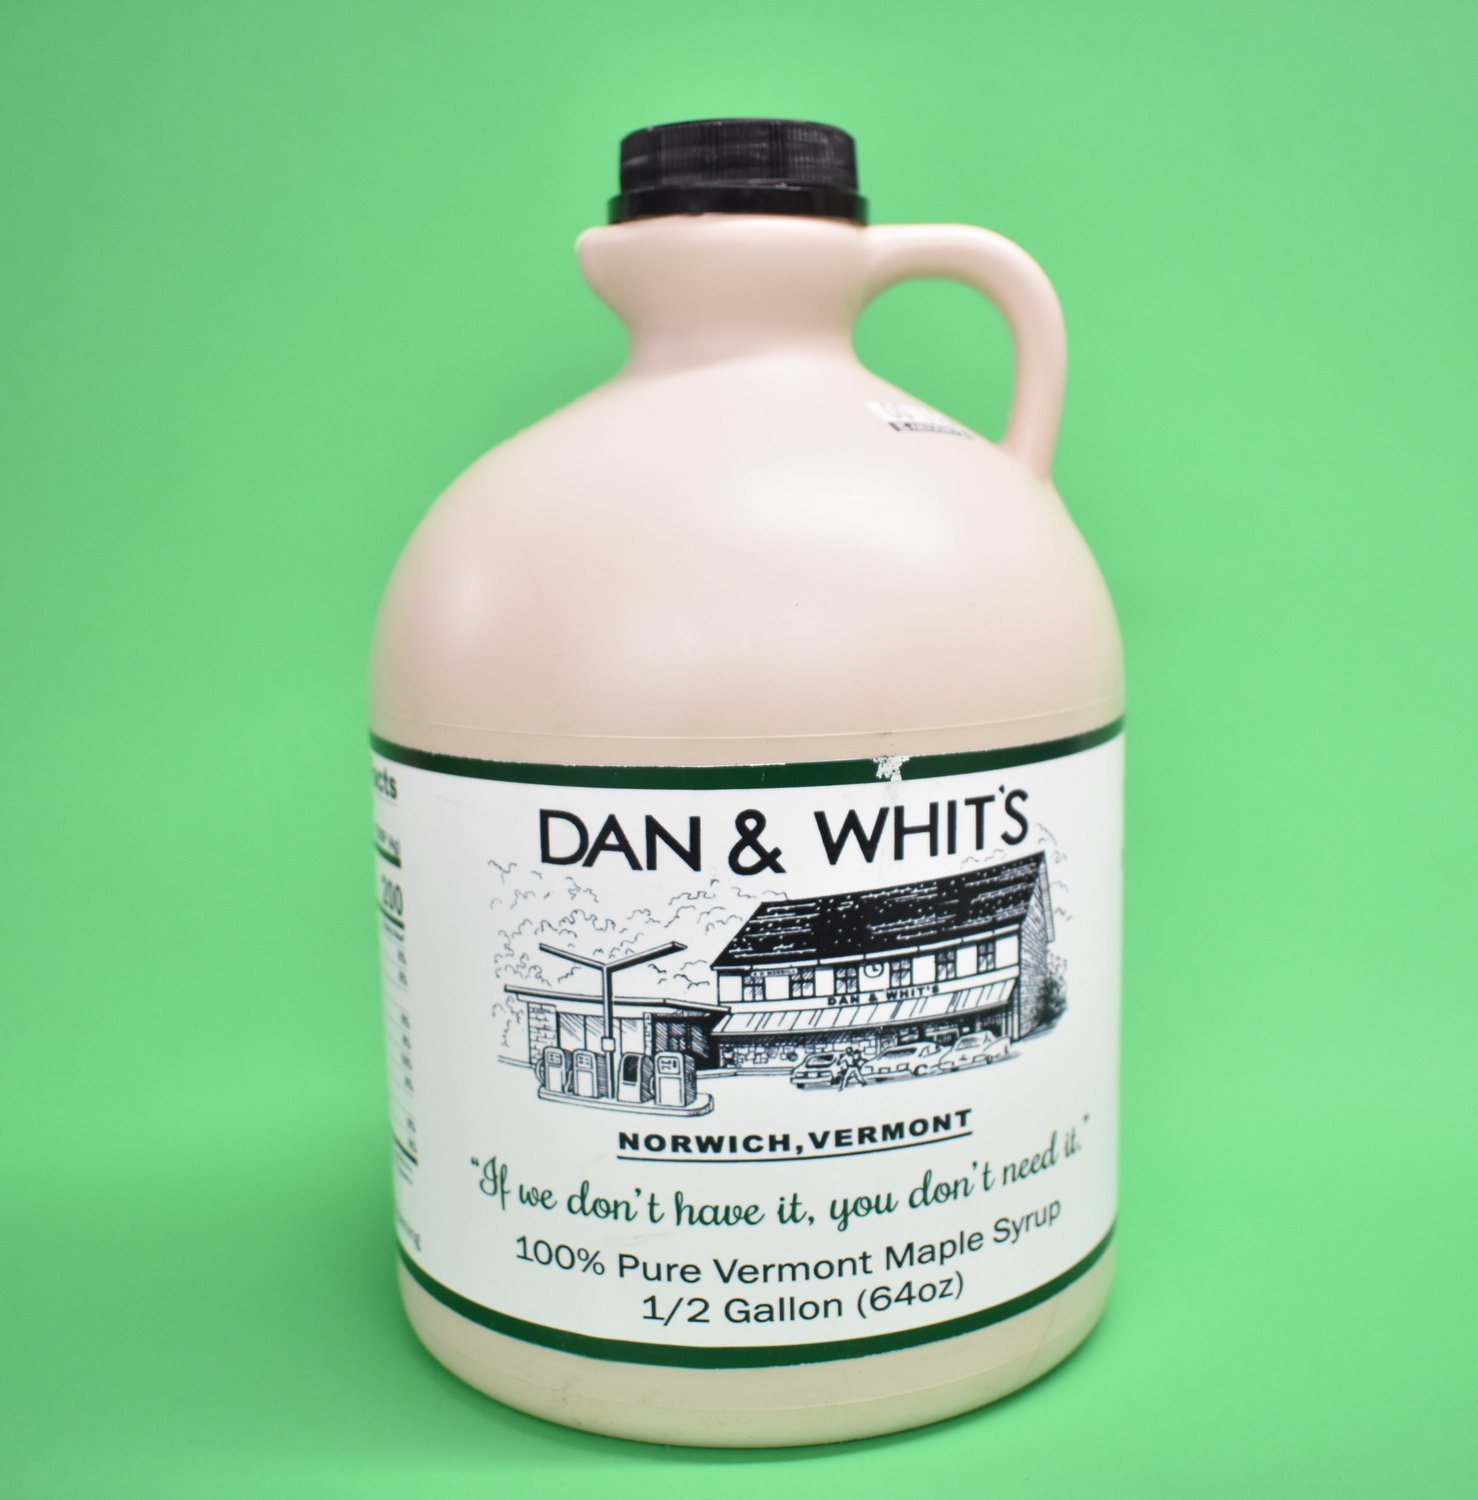 Dan & Whit's Maple Syrup